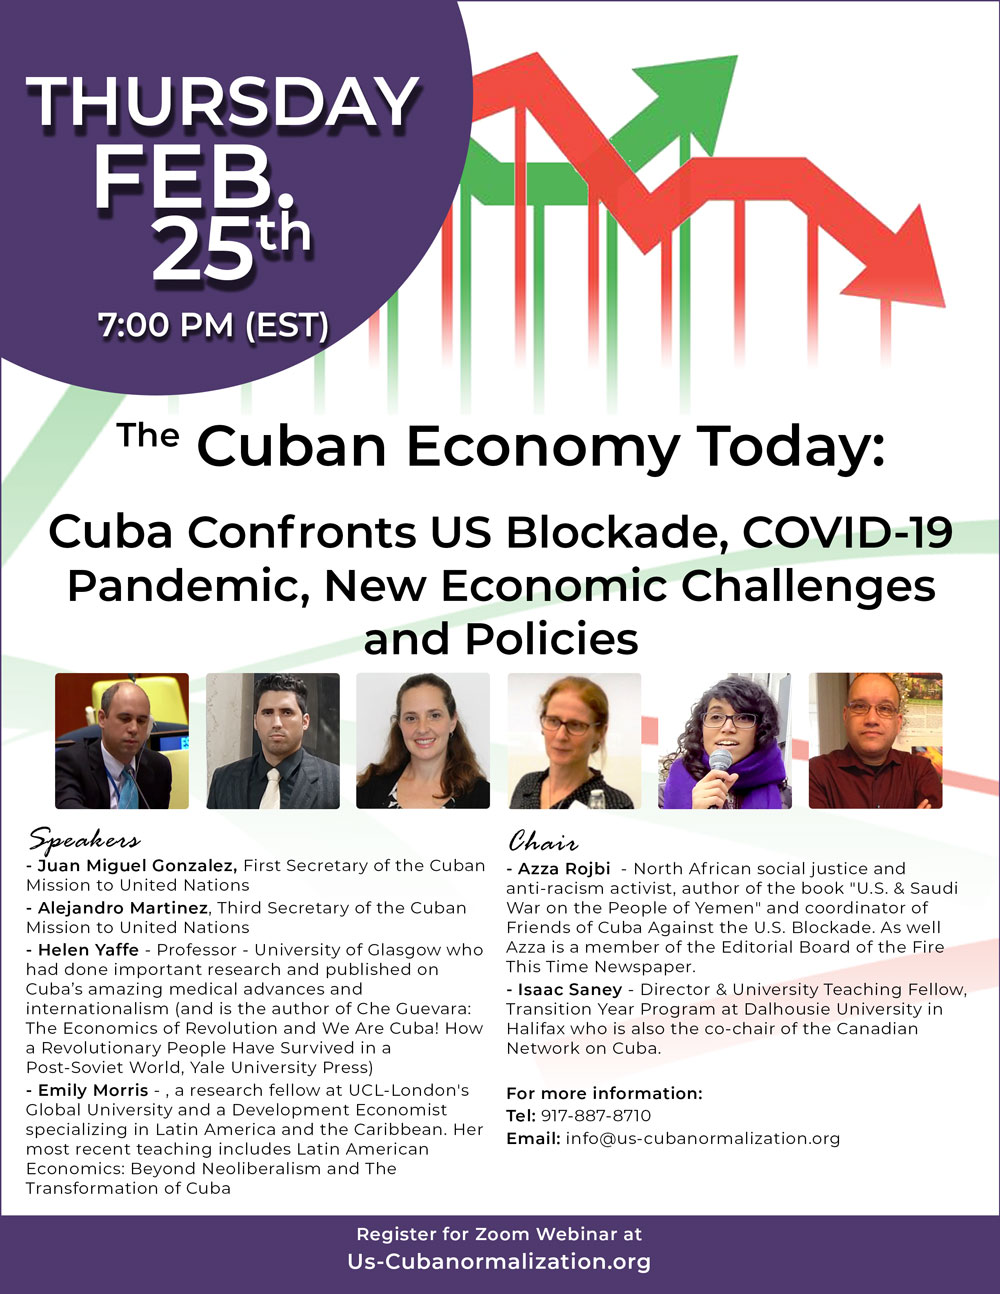 The Cuban Economy Today